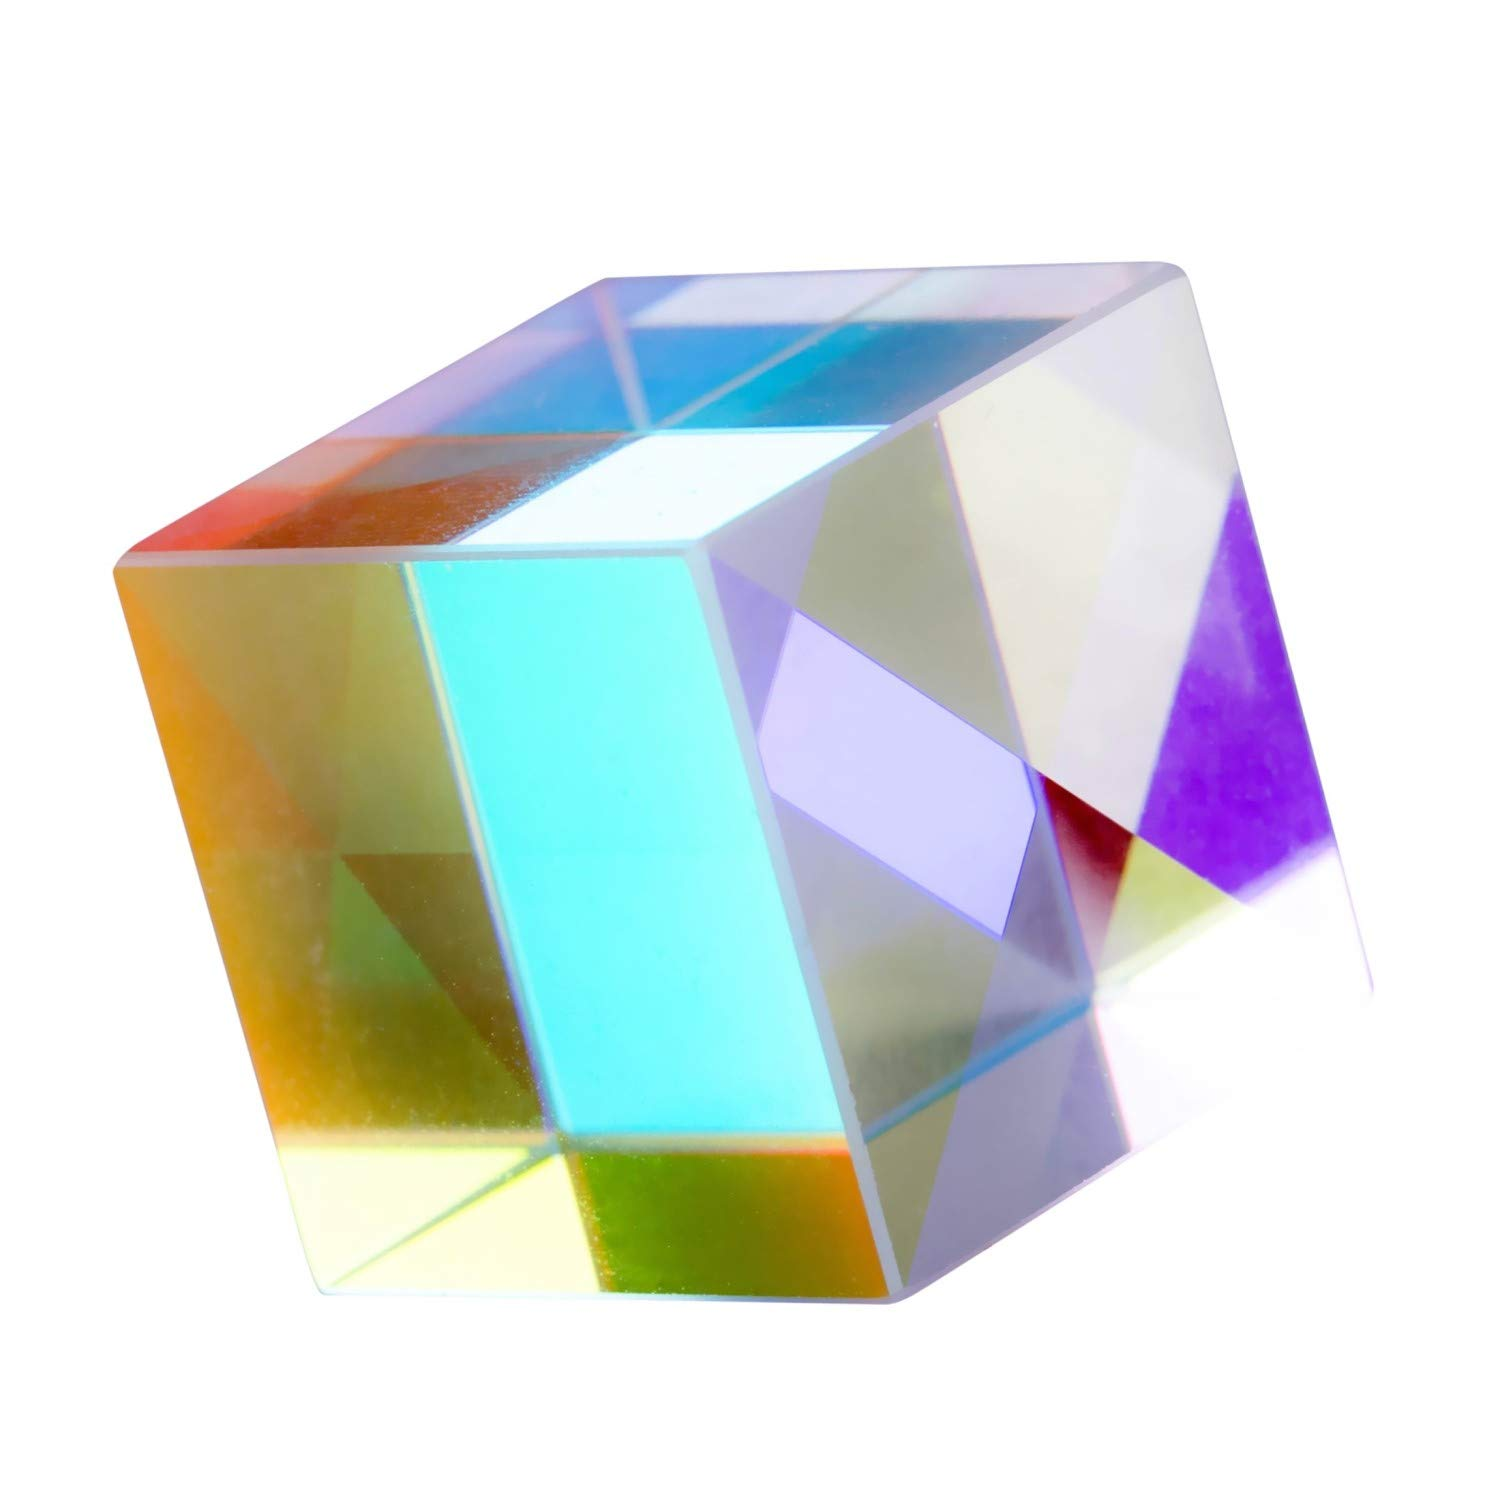 JZENT 25mm Optical Glass Prism RGB Dispersion Prism Physics Light Spectrum Educational Model Outdoor Take Pictures Camera Filter Photo Photography Tool K9-03